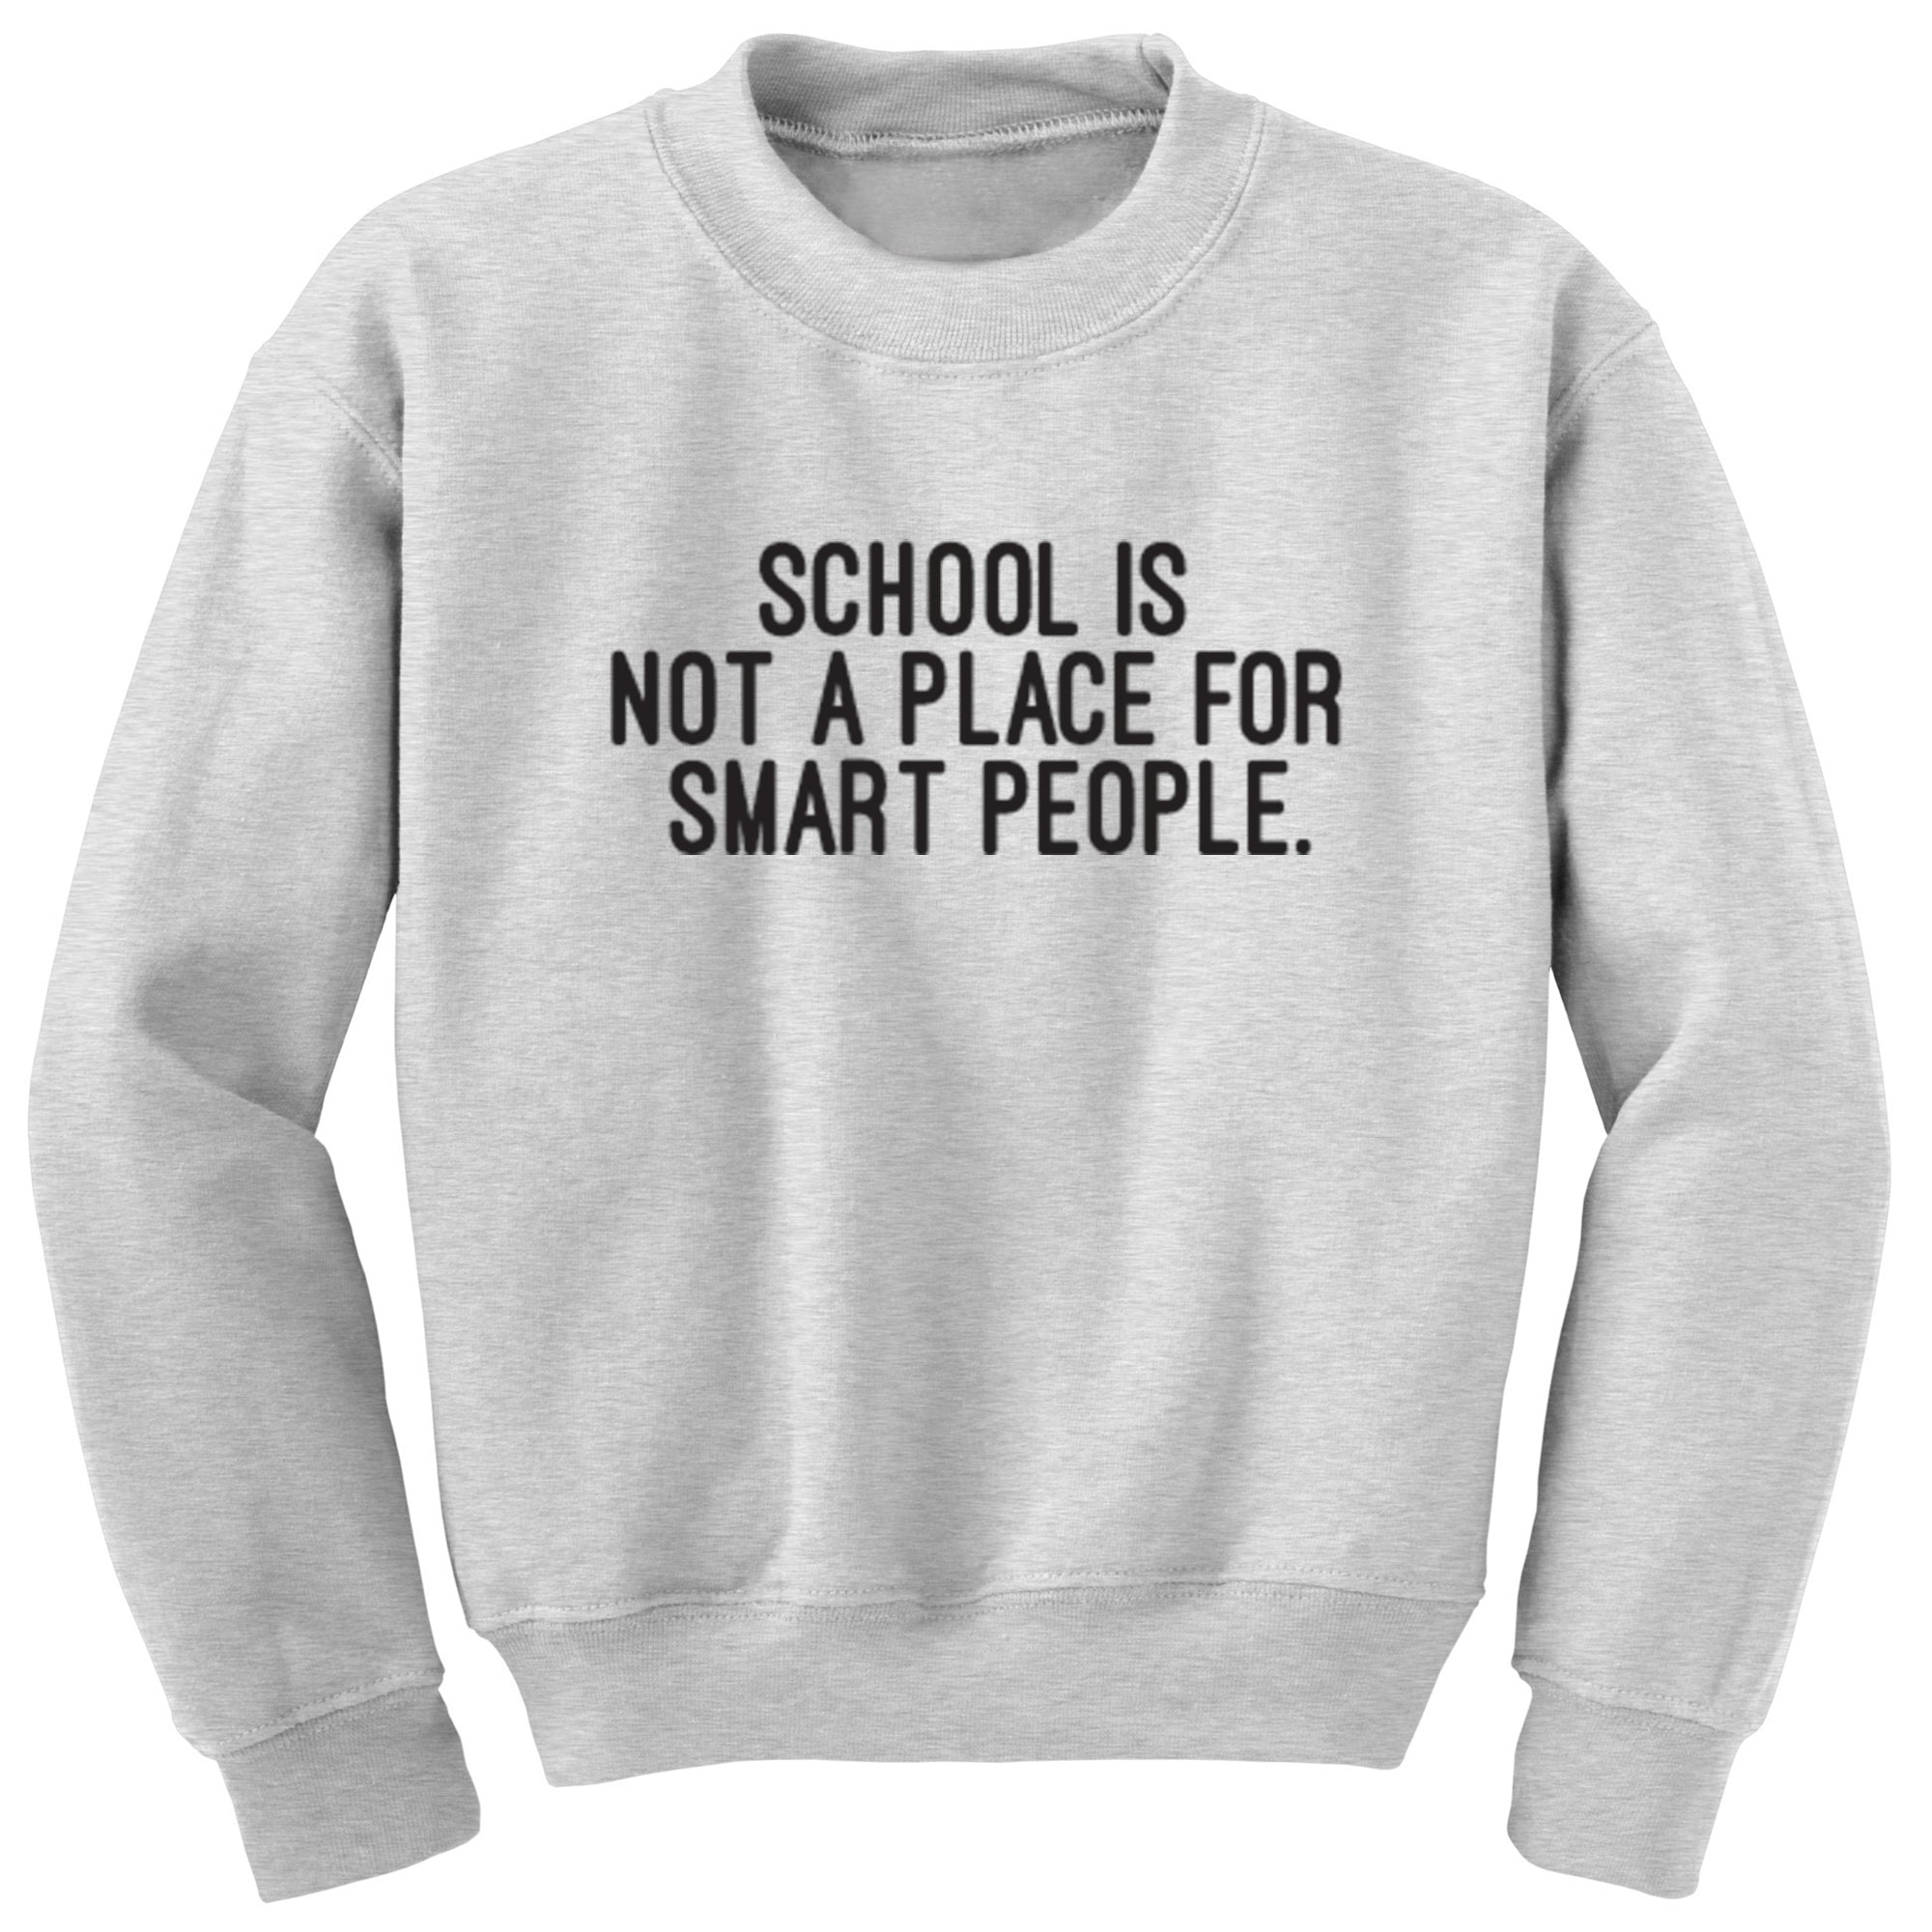 School Is Not A Place For Smart People Unisex Jumper S0404 - Illustrated Identity Ltd.